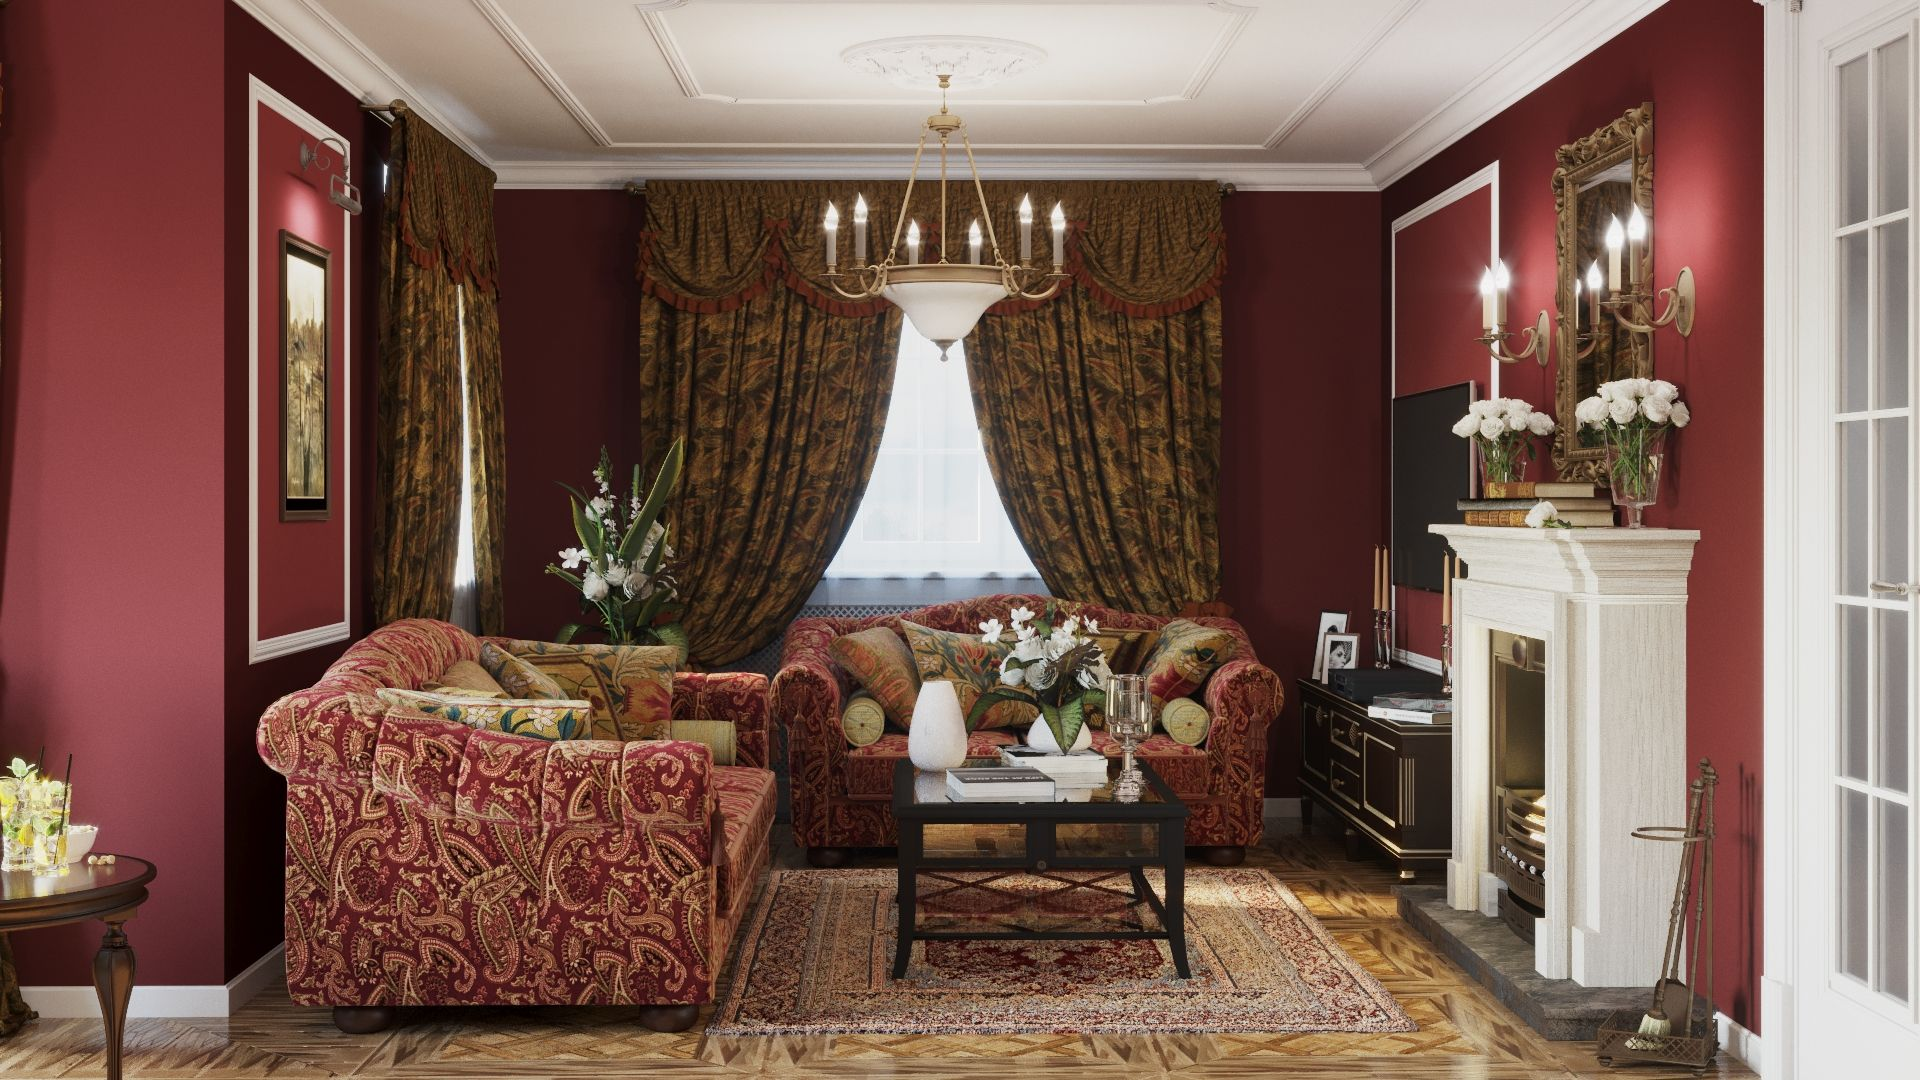 red luxury living room in russian interior design stylered luxury living room in russian interior design style